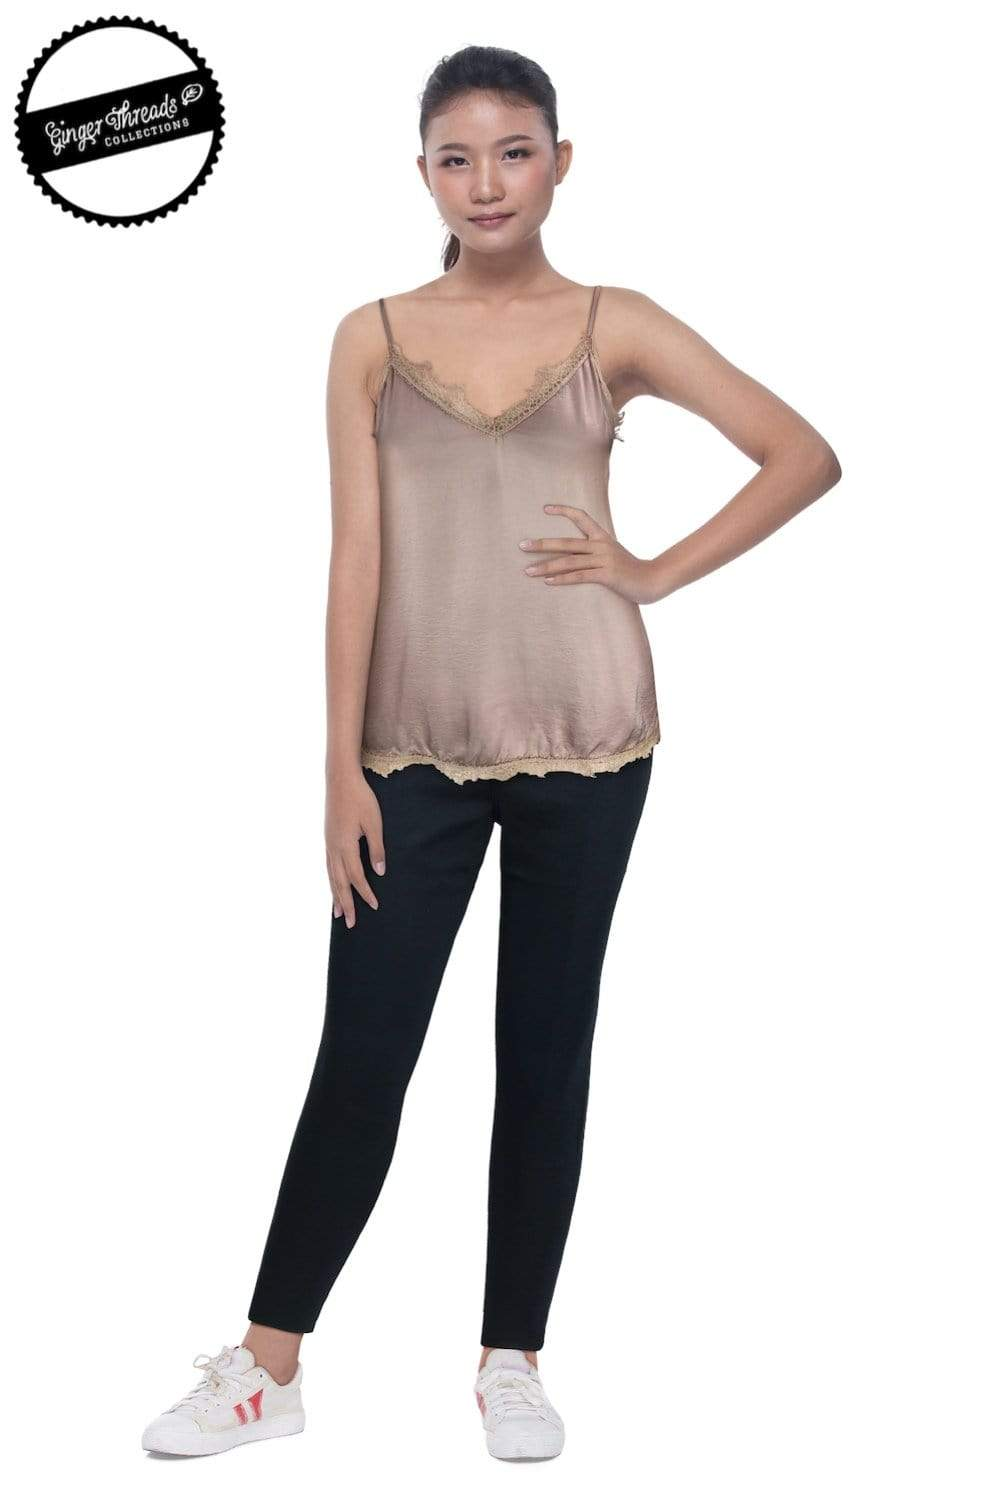 Ginger Threads Collections camisole Lace Trim Camisole